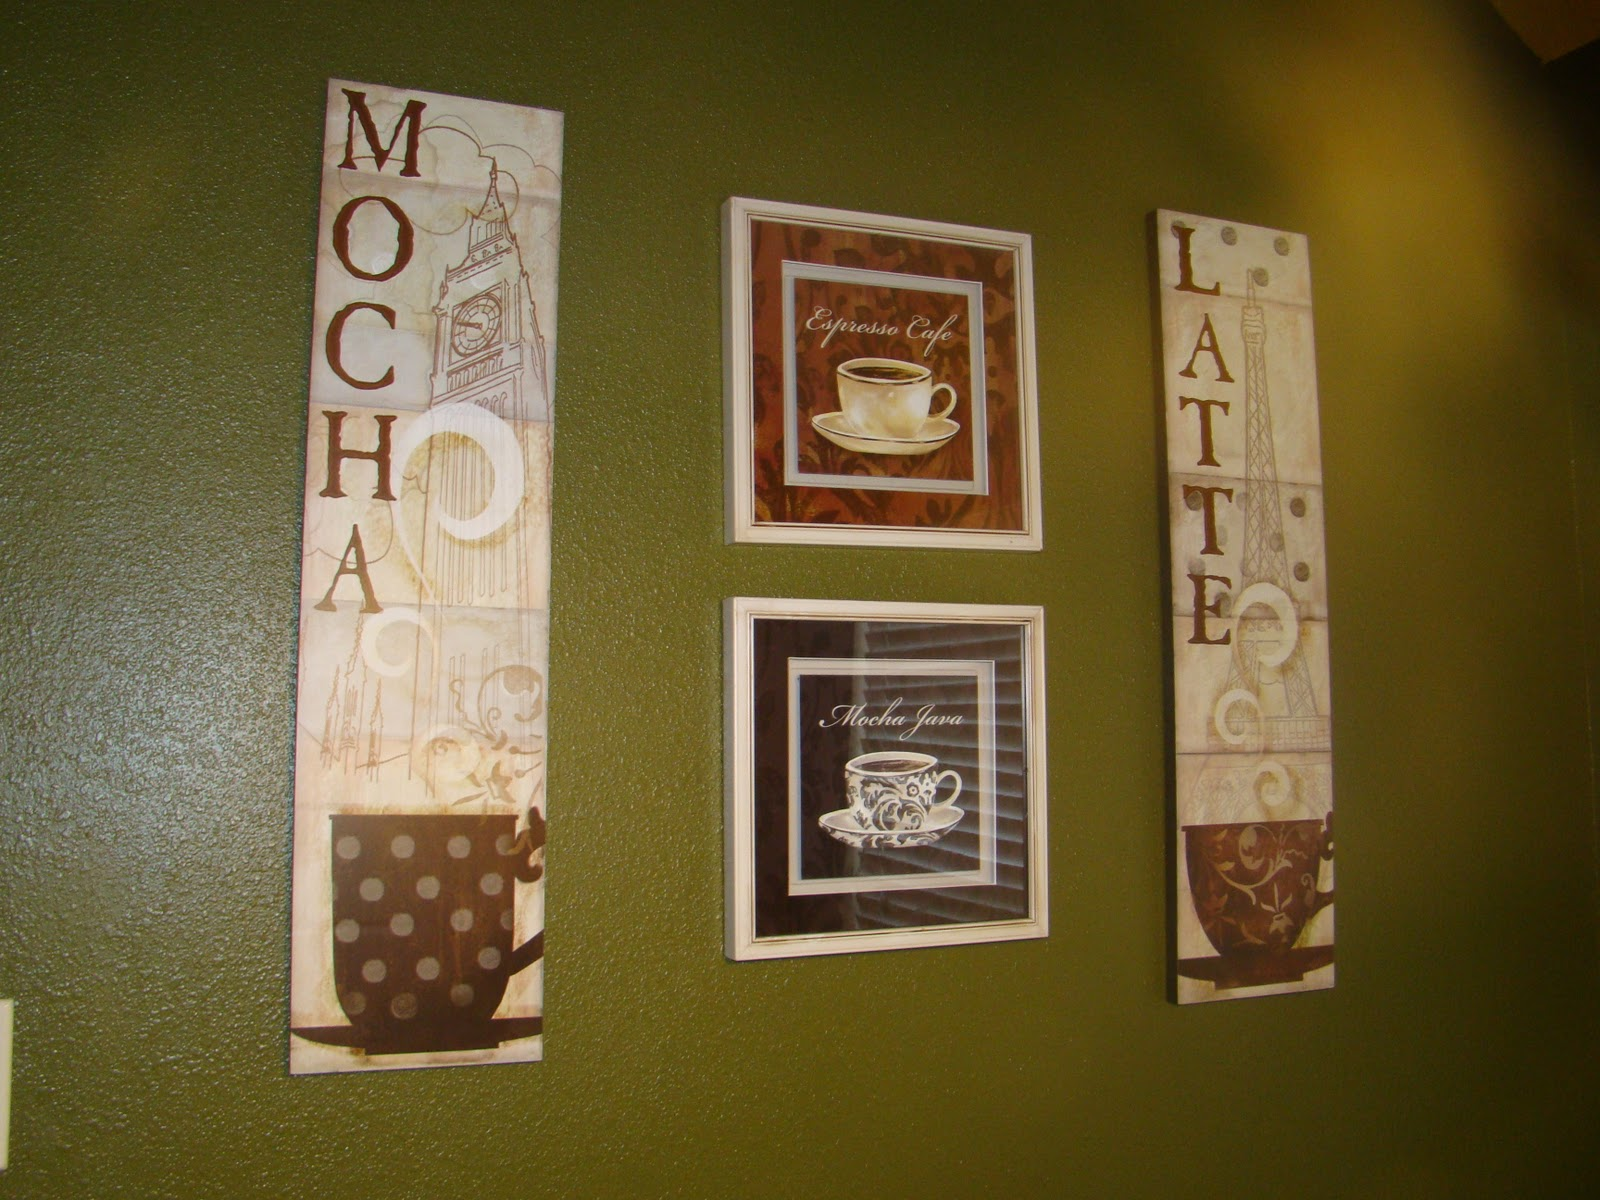 Find and save ideas about Coffee themed kitchen on Pinterest. | See more ideas about Coffee theme kitchen, Coffee kitchen decor and Cafe themed kitchen.